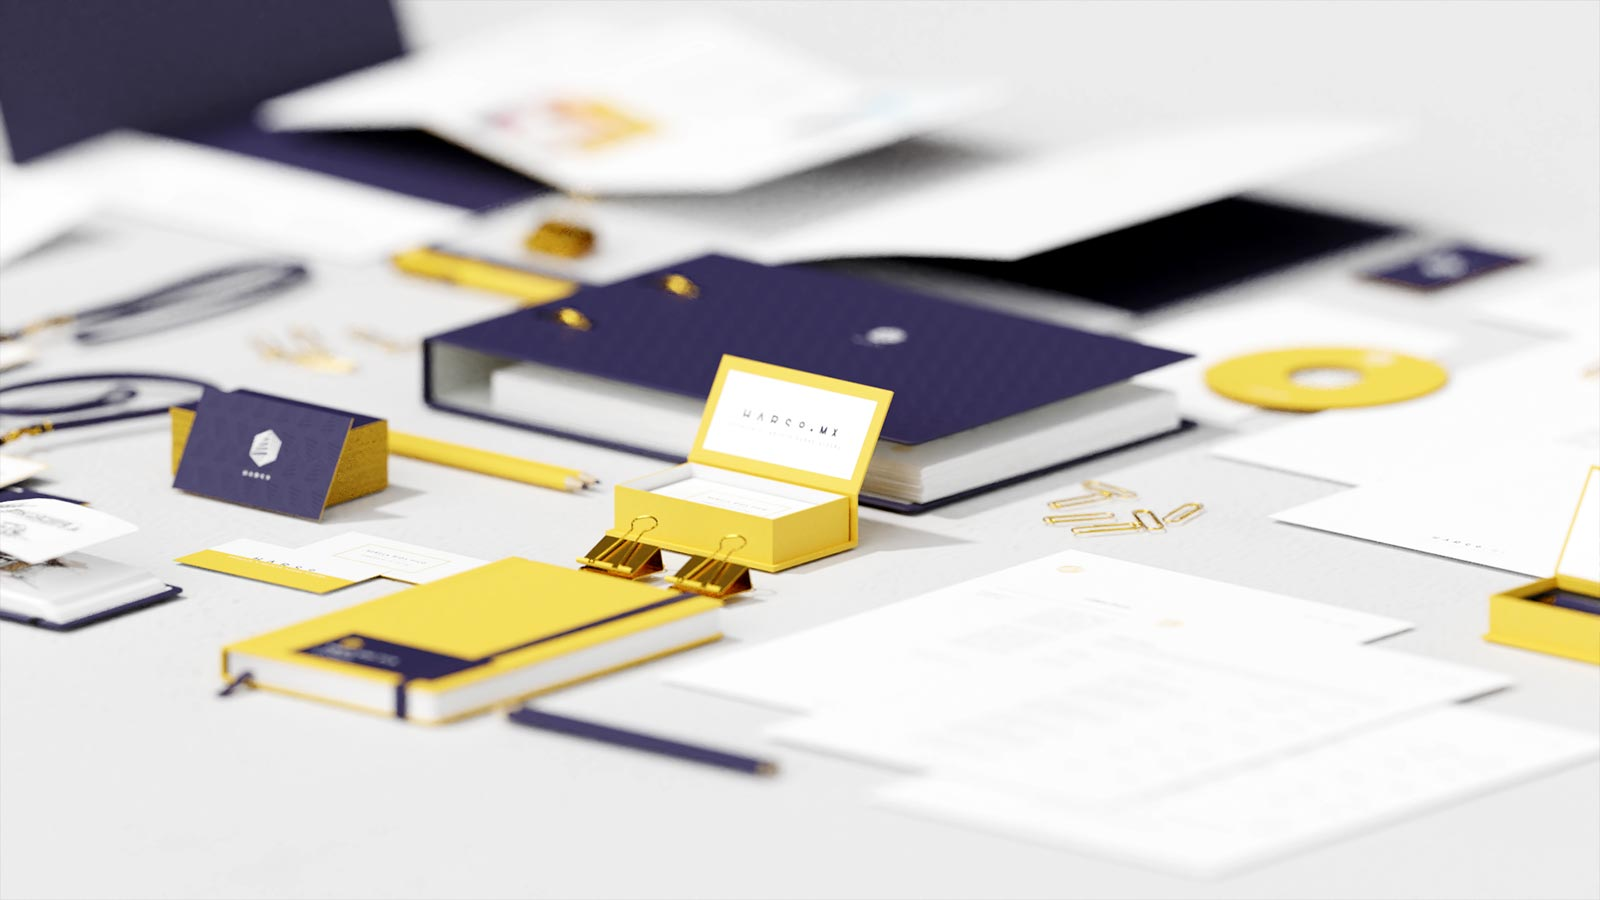 Brand Identity. What, How & Why?